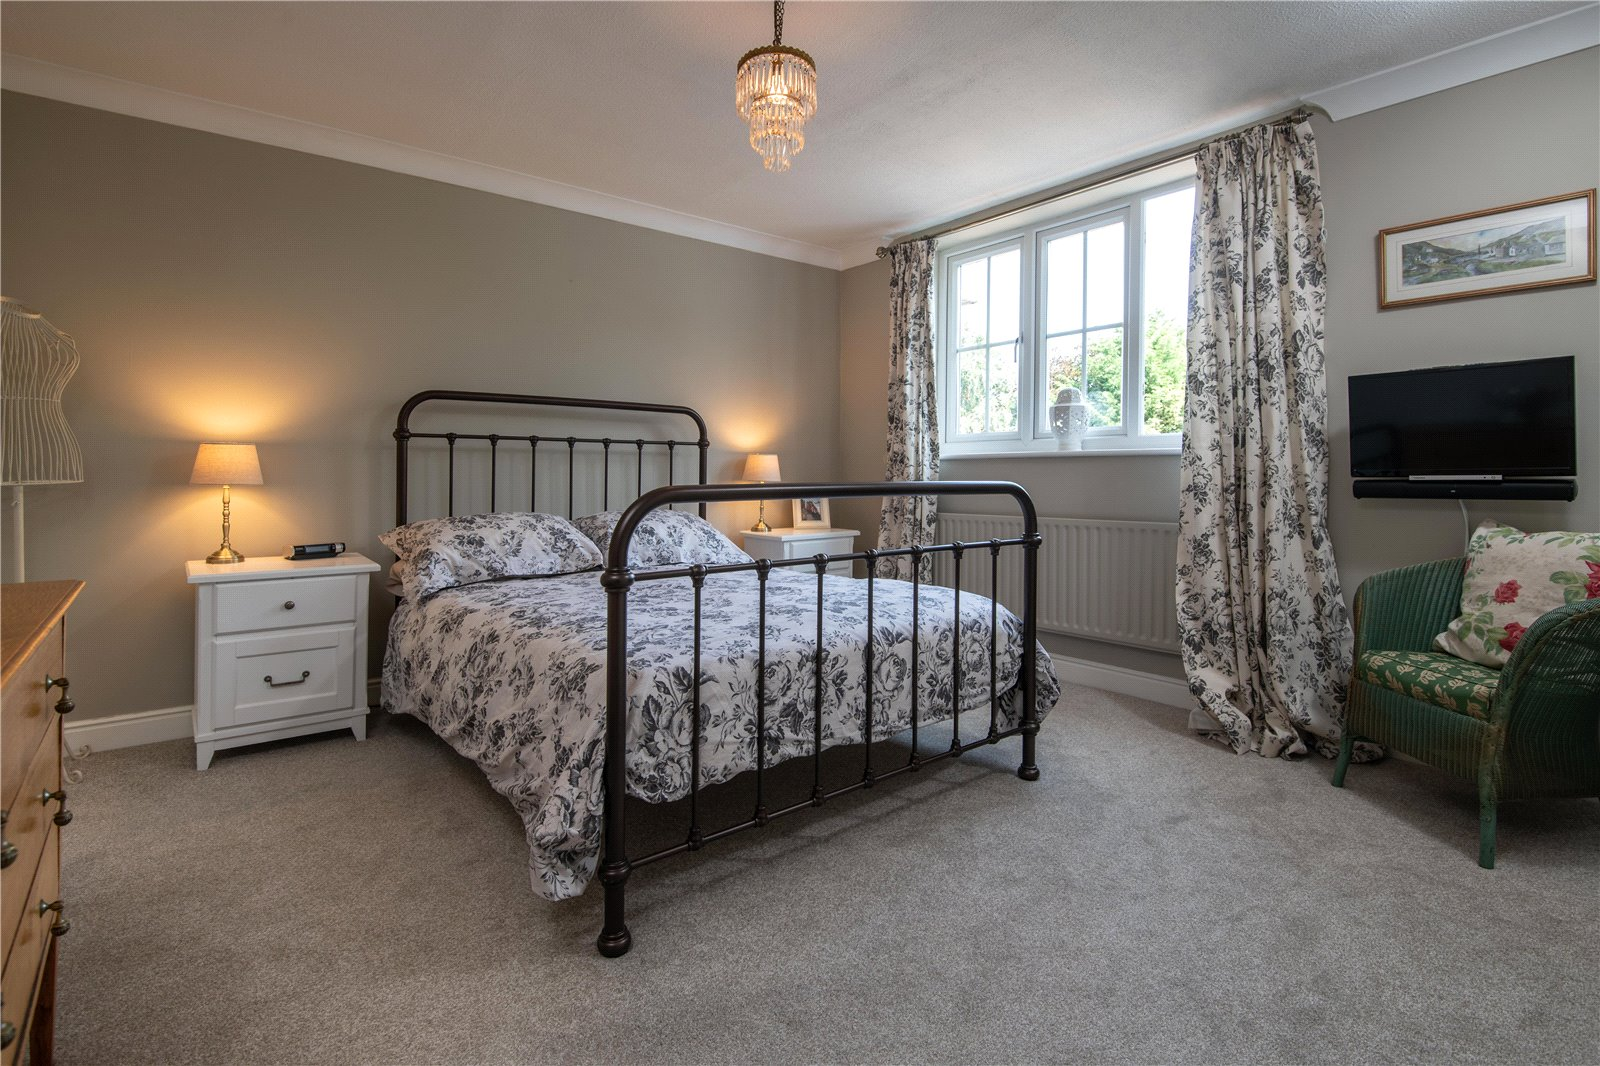 5 bed house for sale in Rookery Road, Wyboston  - Property Image 13